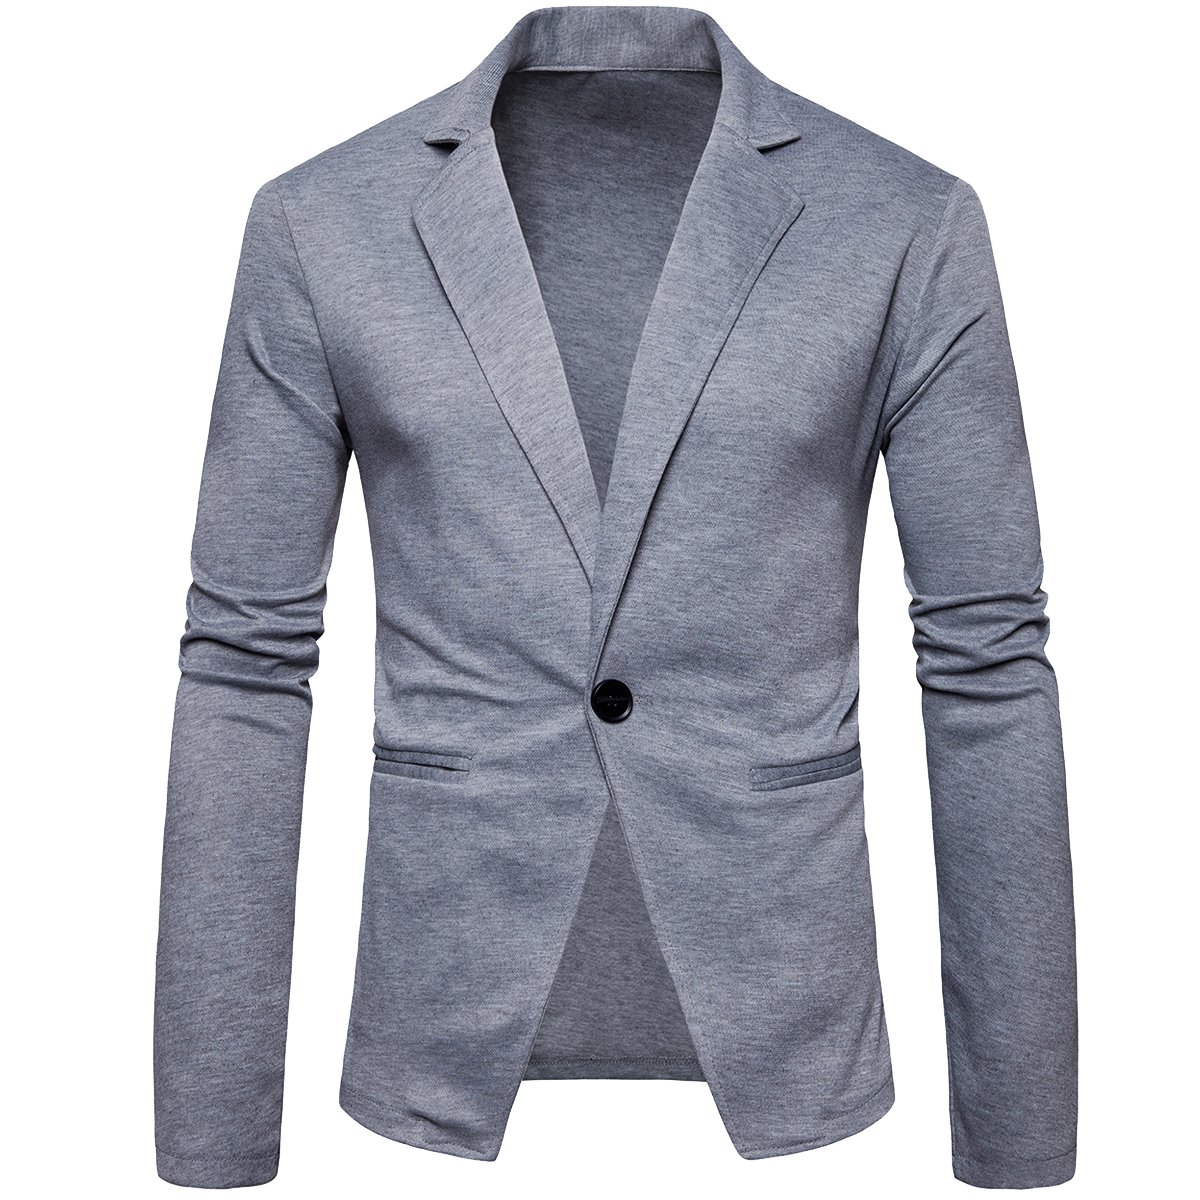 Cottory Mens Slim Fit Stylish One Button Sport Jacket Casual Tuxedo